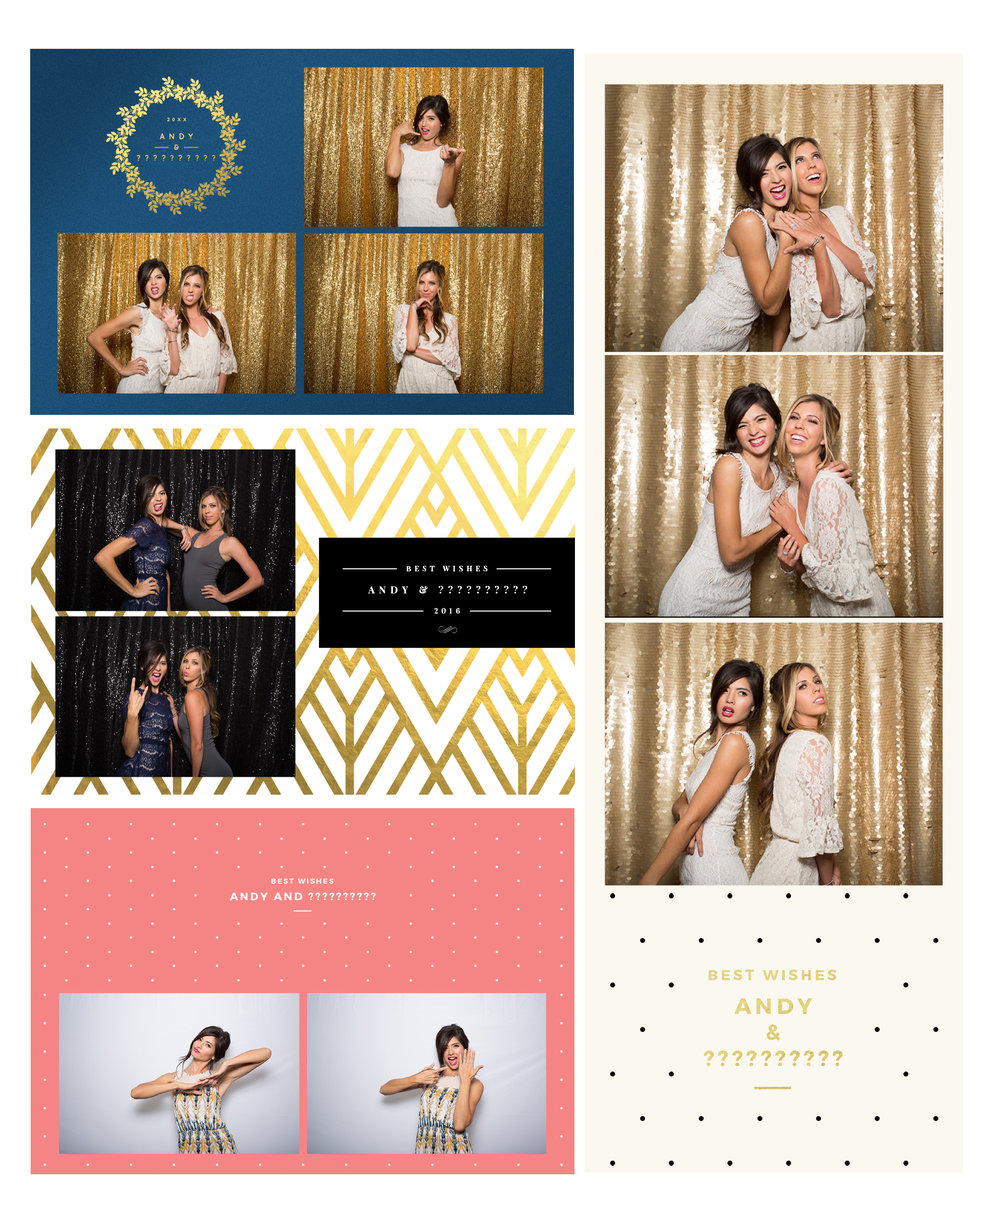 templates-photo-booth-rental-nyc-nj-long-island-jadoreandy.jpg